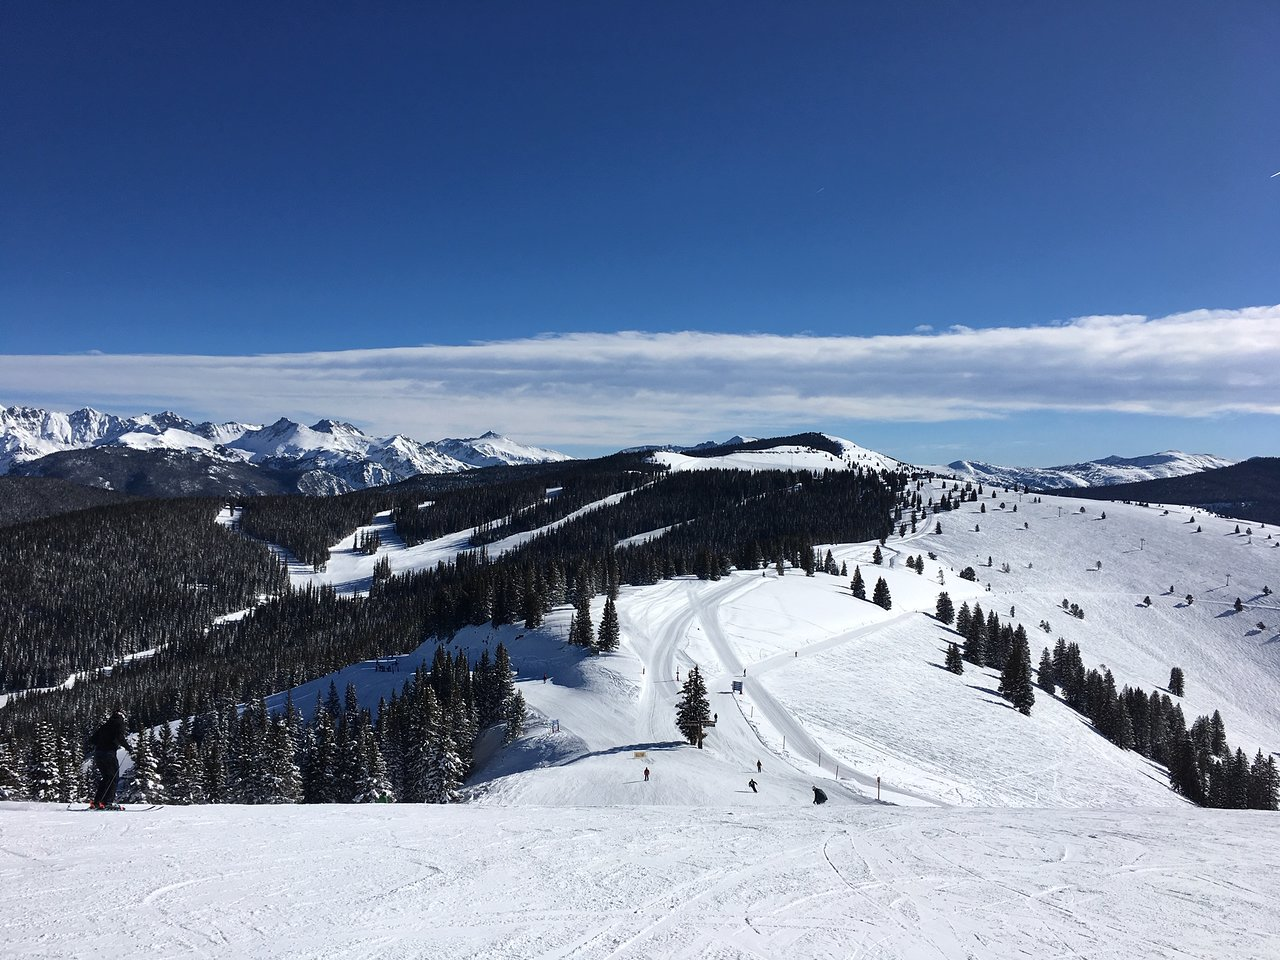 Vail Mountain Resort All You Need To Know Before You Go Updated 2021 Co Tripadvisor